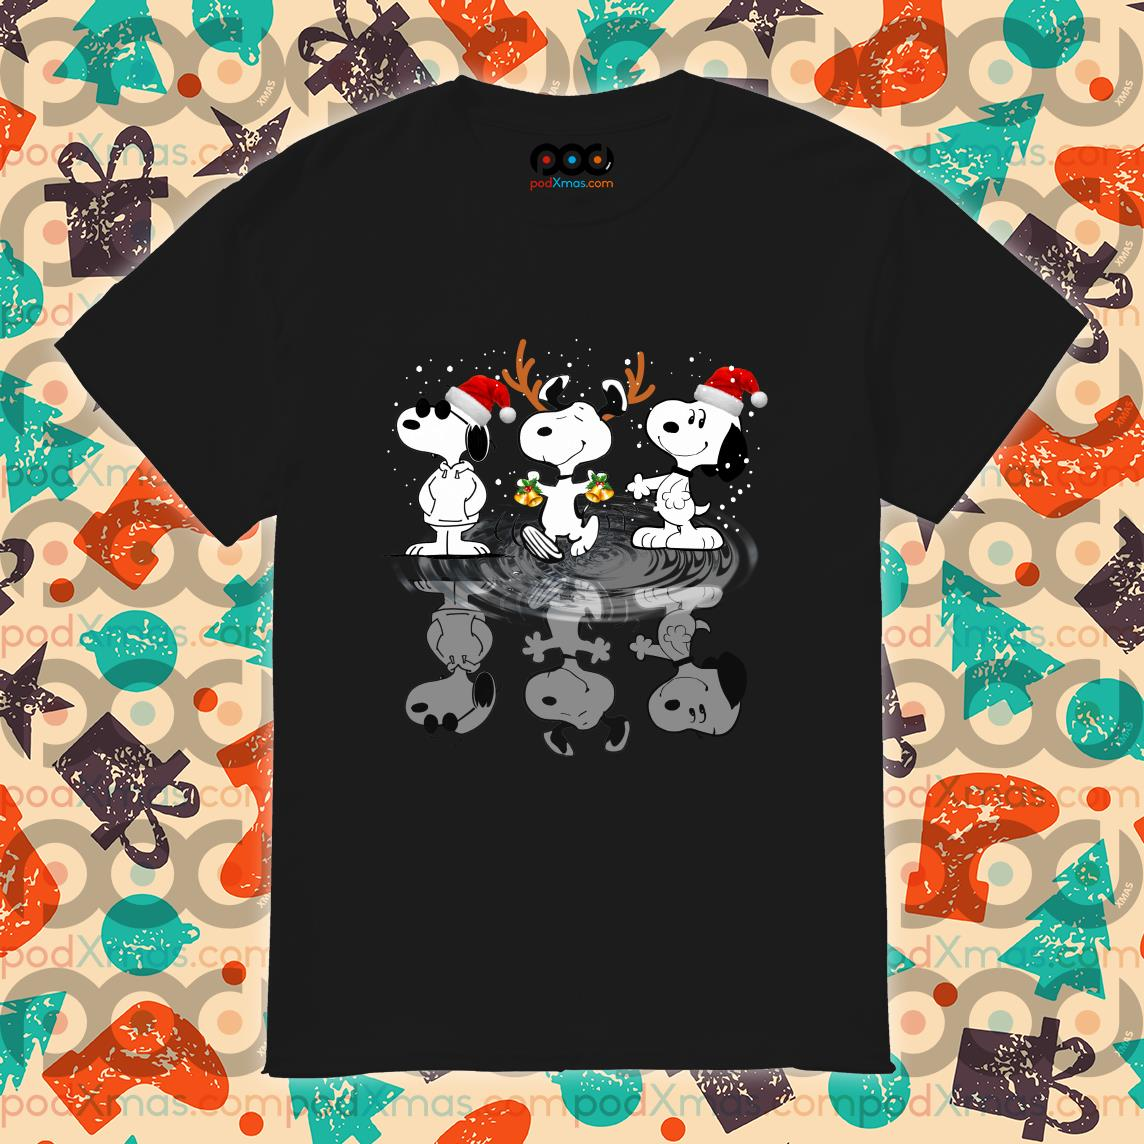 Snoopy water mirror reflection Christmas shirt